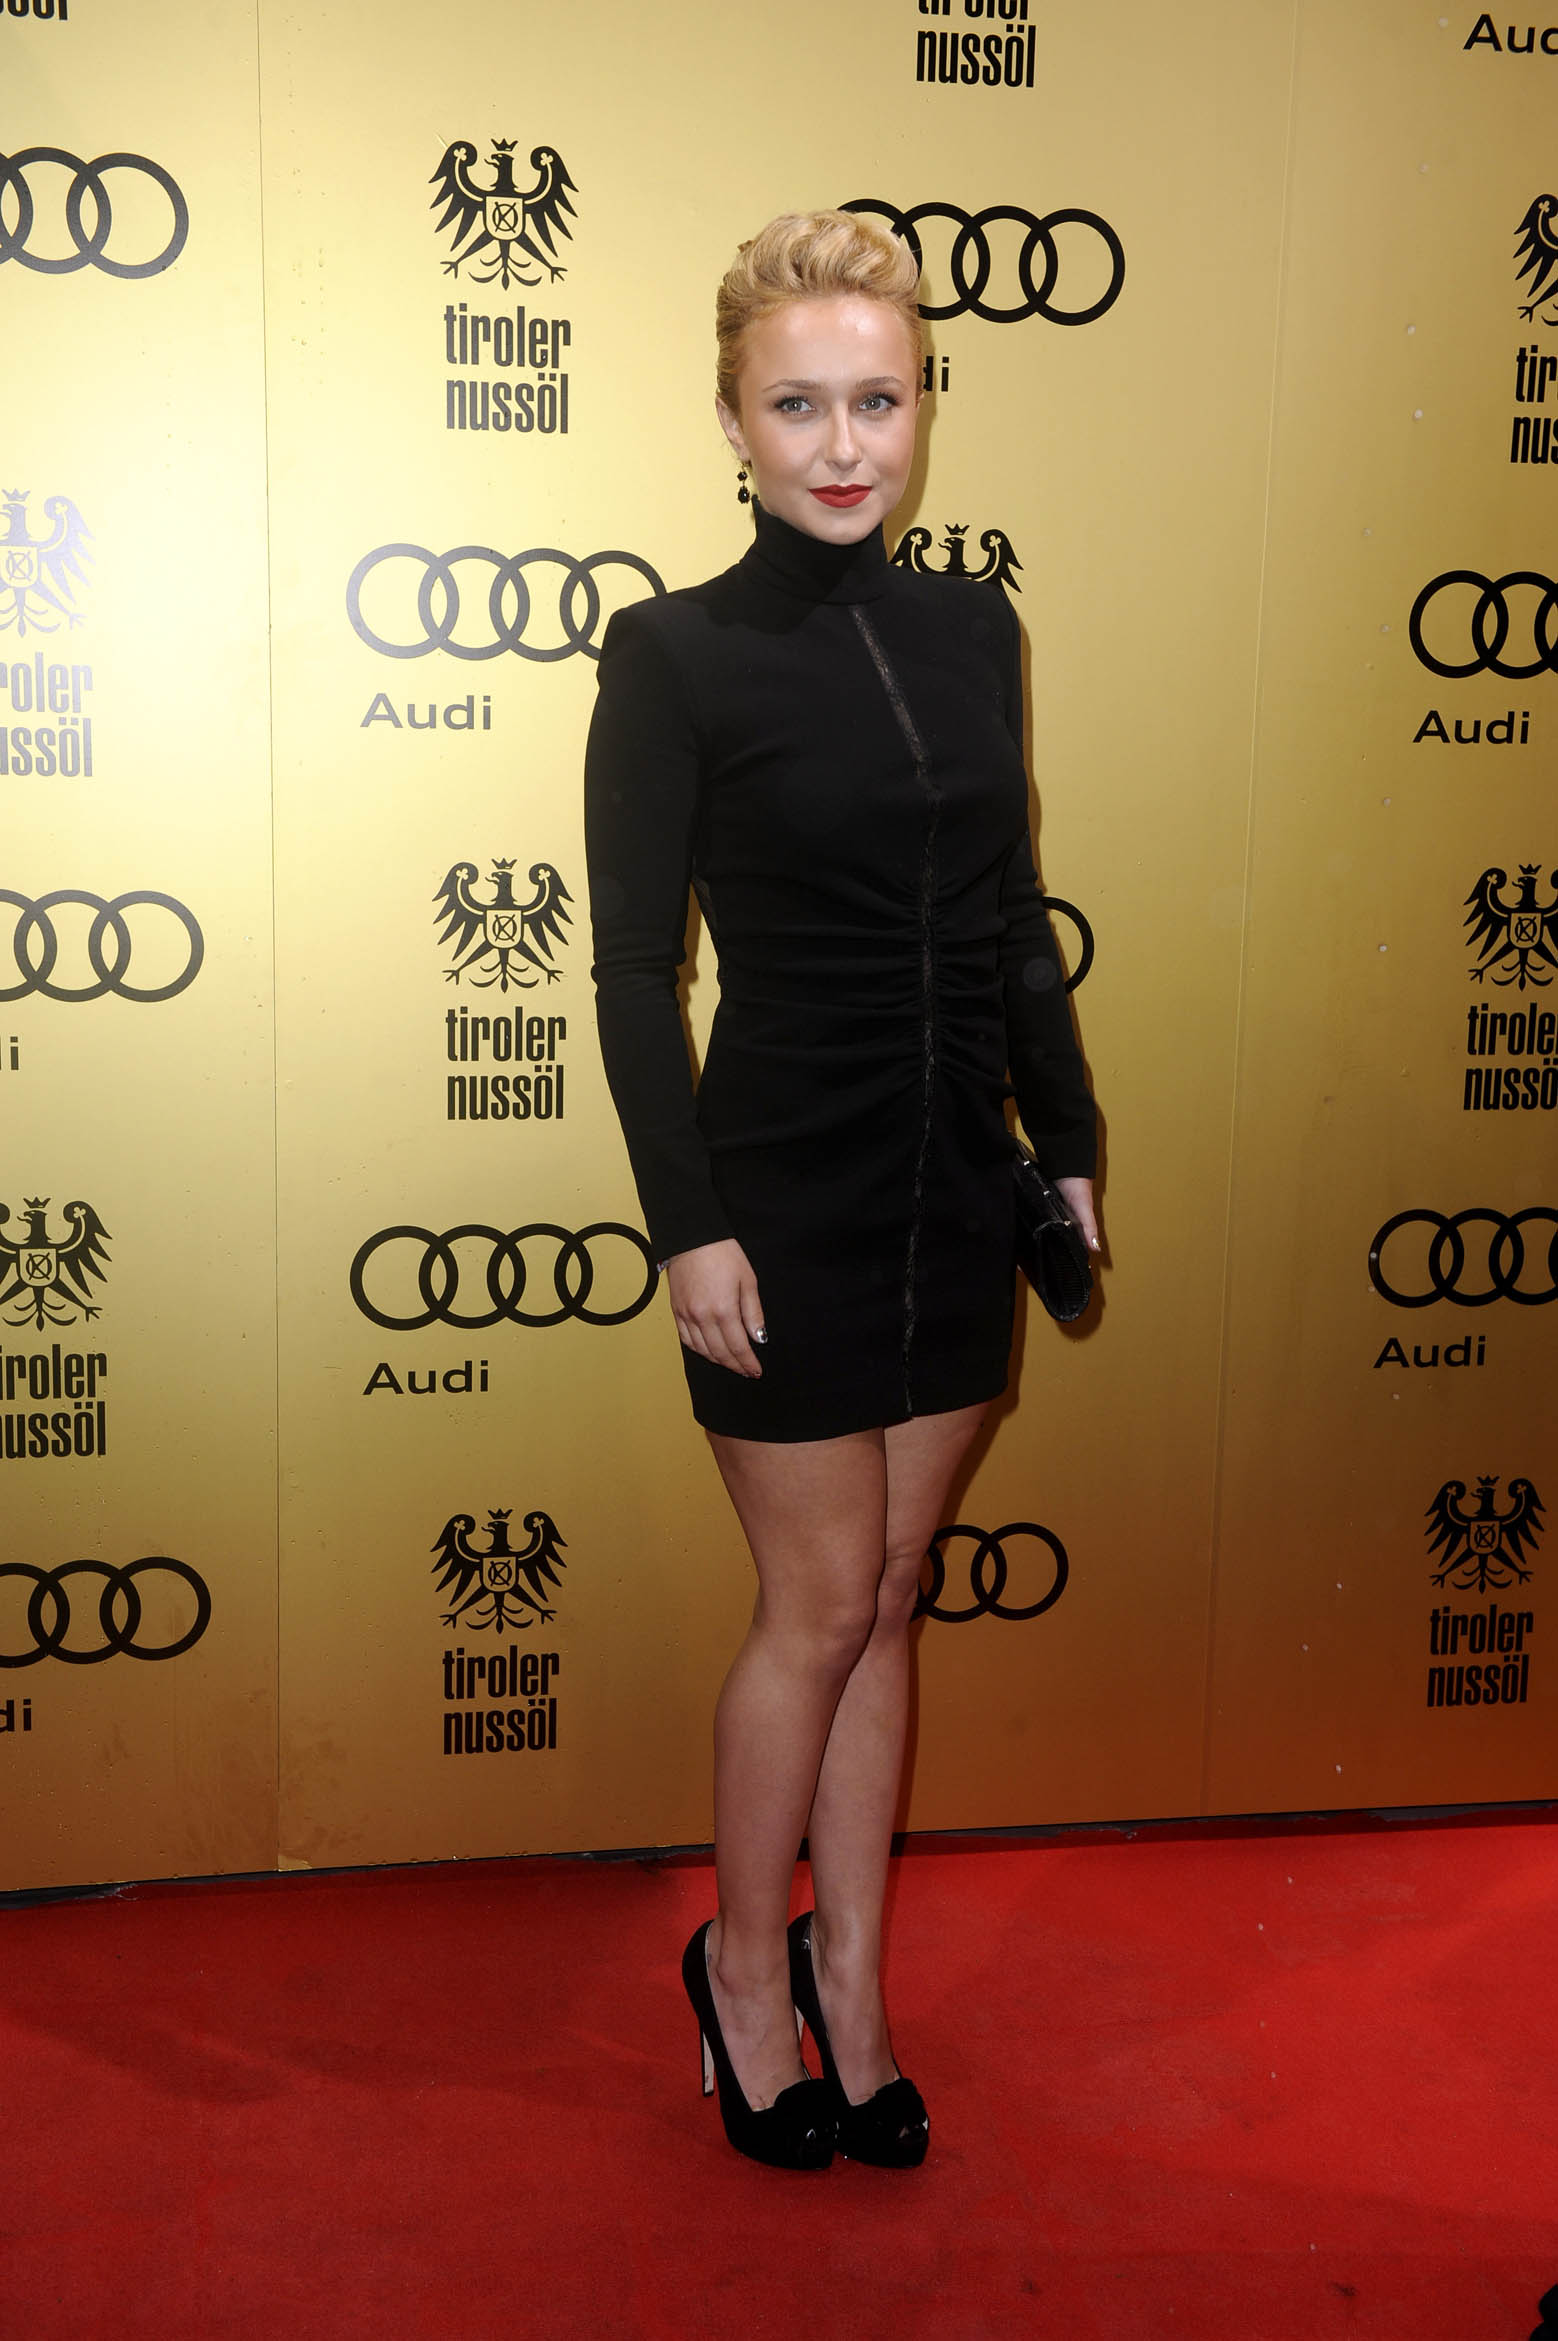 Hayden Panettiere Only In High Heels